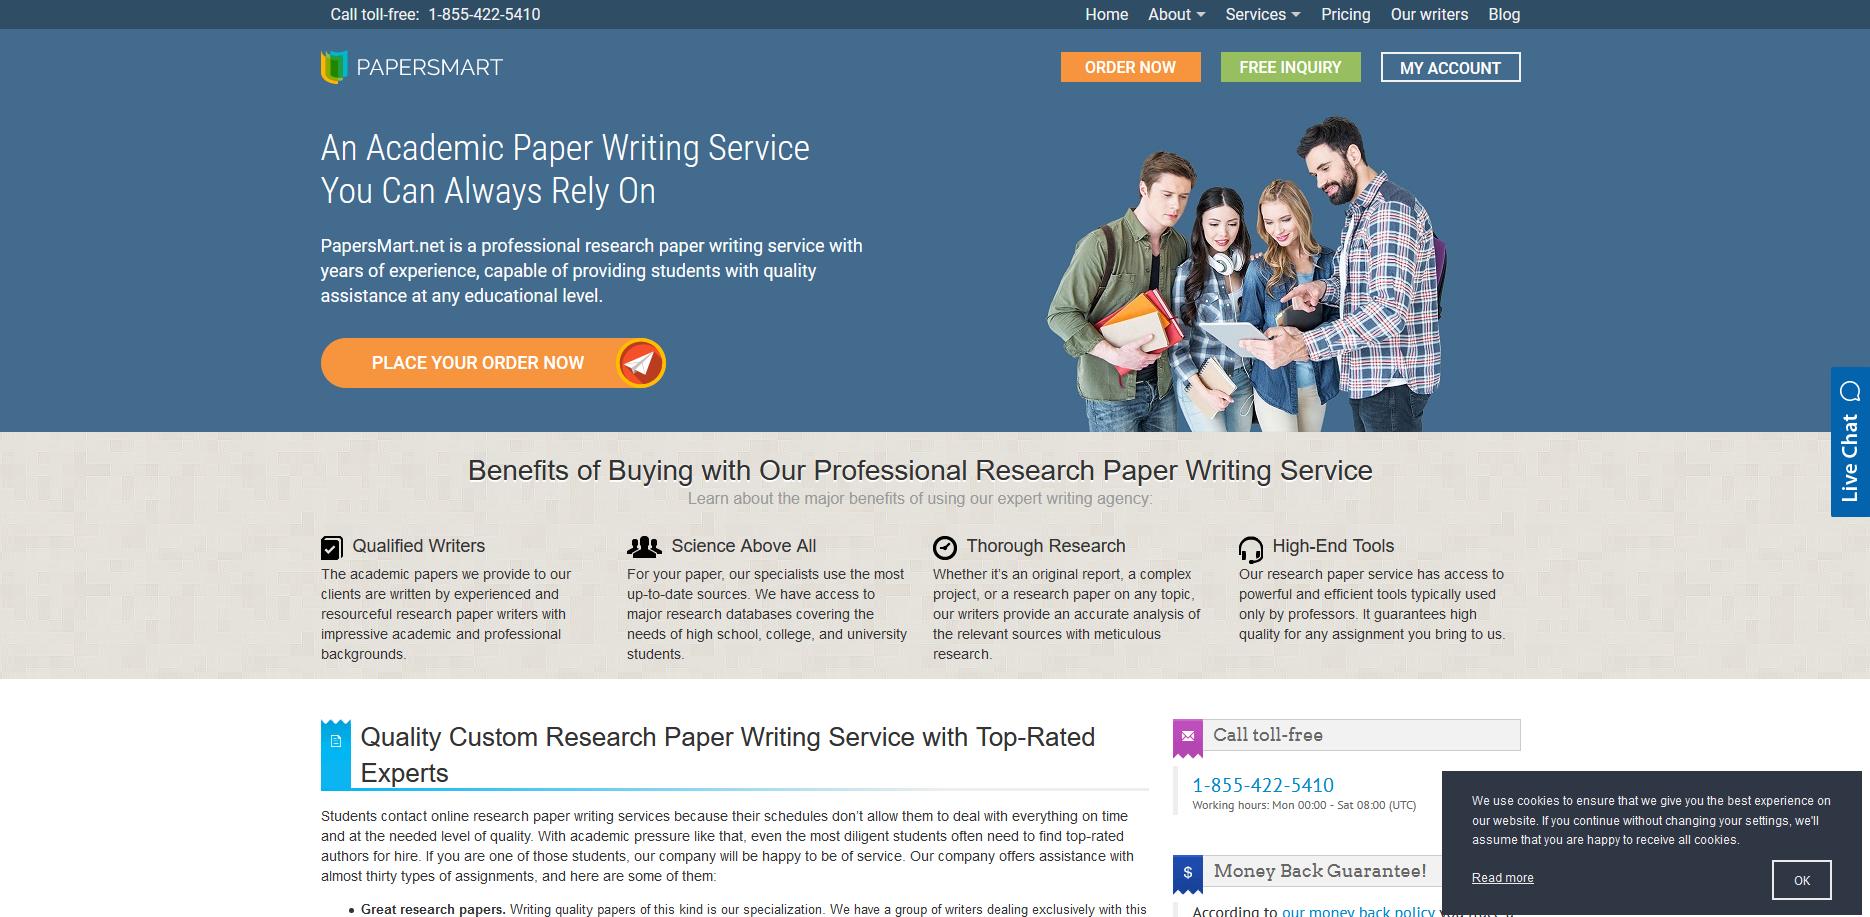 Papersmart.net Writing Service Review by TheLegitEssay